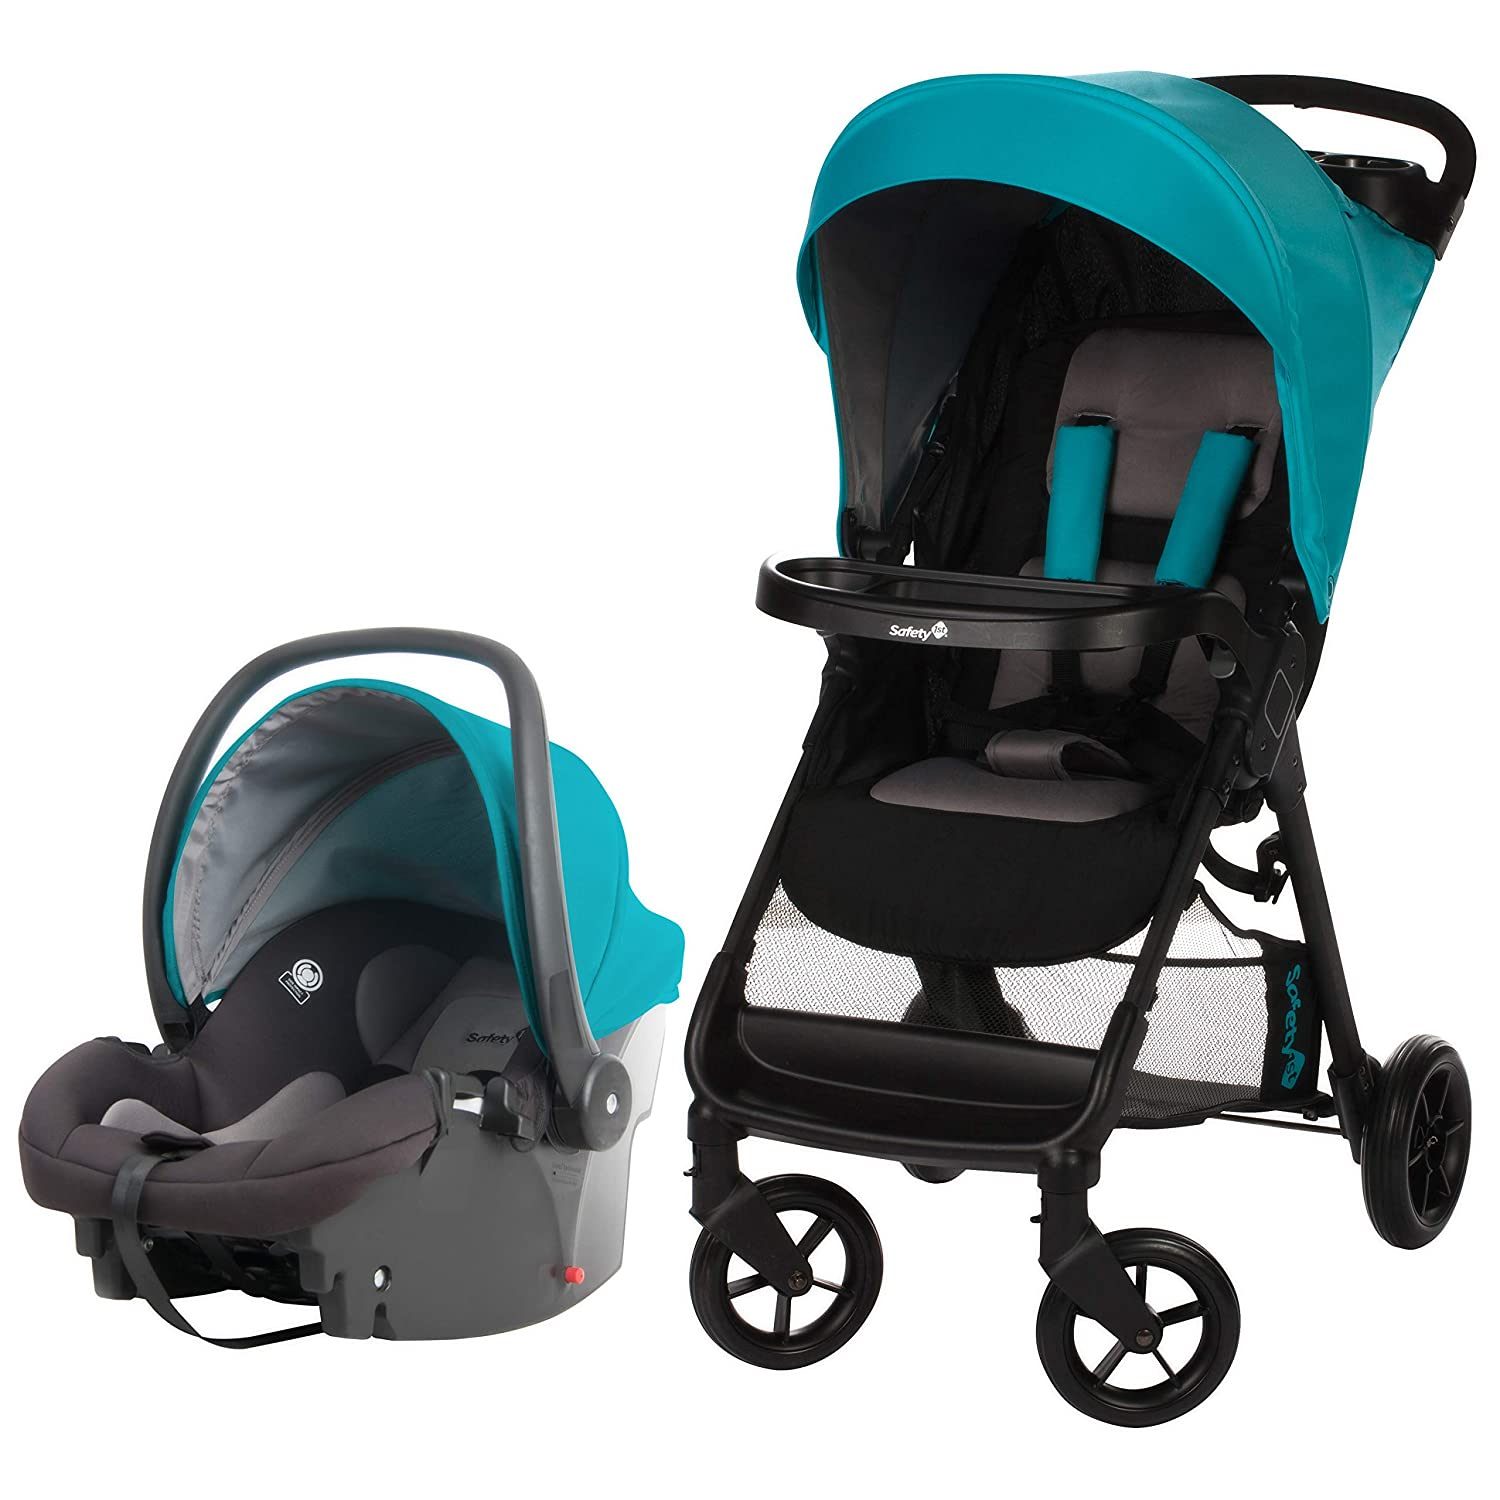 Safety 1st Smooth Ride Travel System with onBoard 35 Infant Car Seat, Lake Blue TR378EEJ